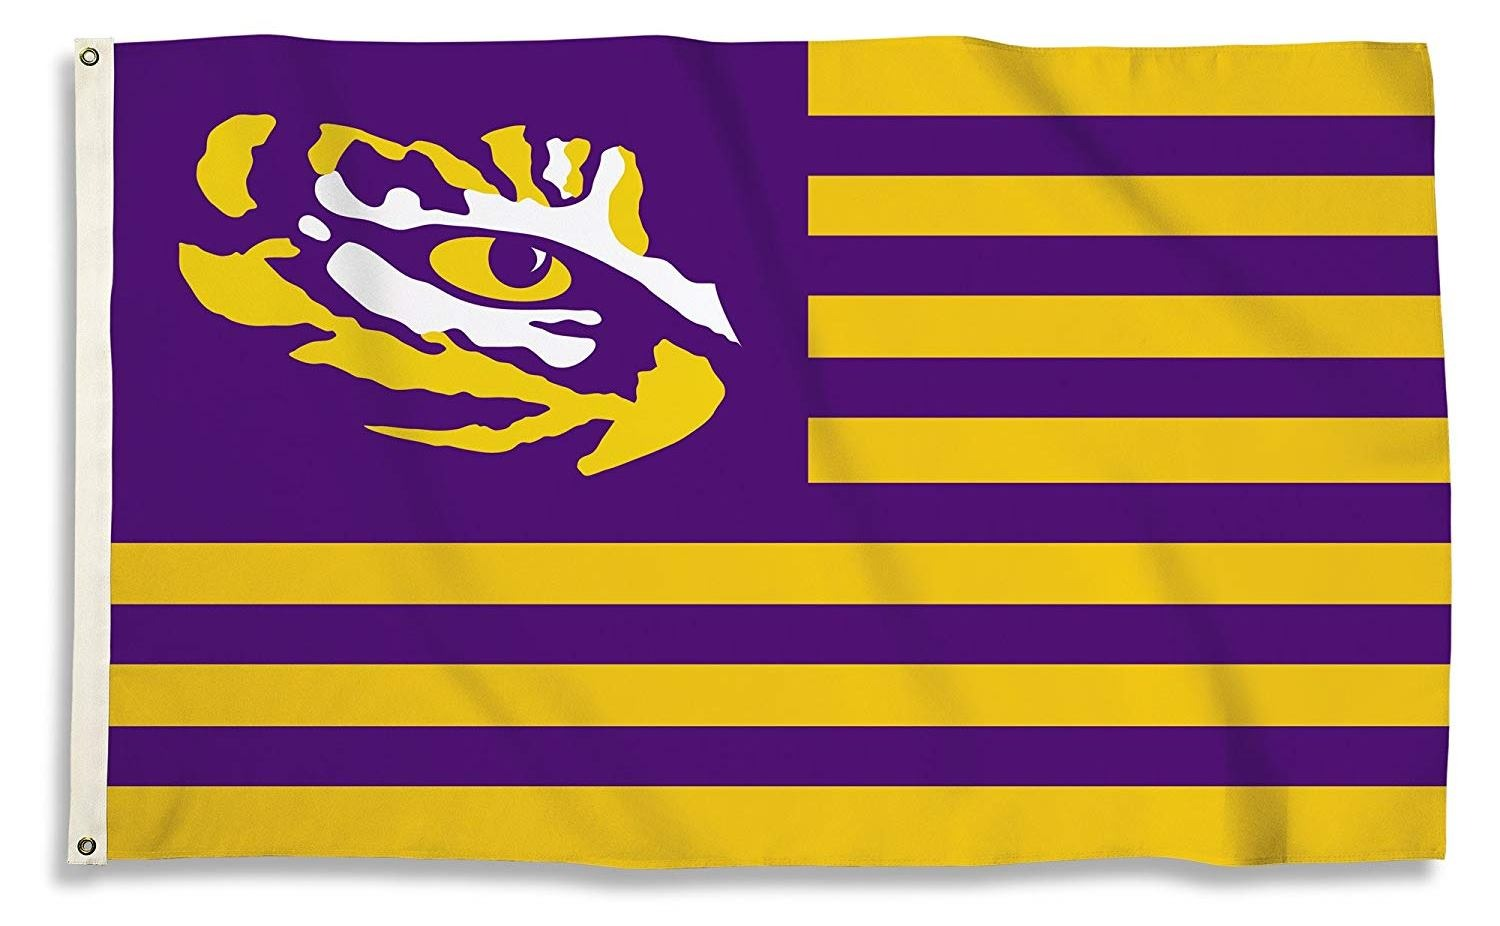 Details about LSU Tigers STRIPES Nation 3x5 Flag w/grommets Banner  Louisiana State University